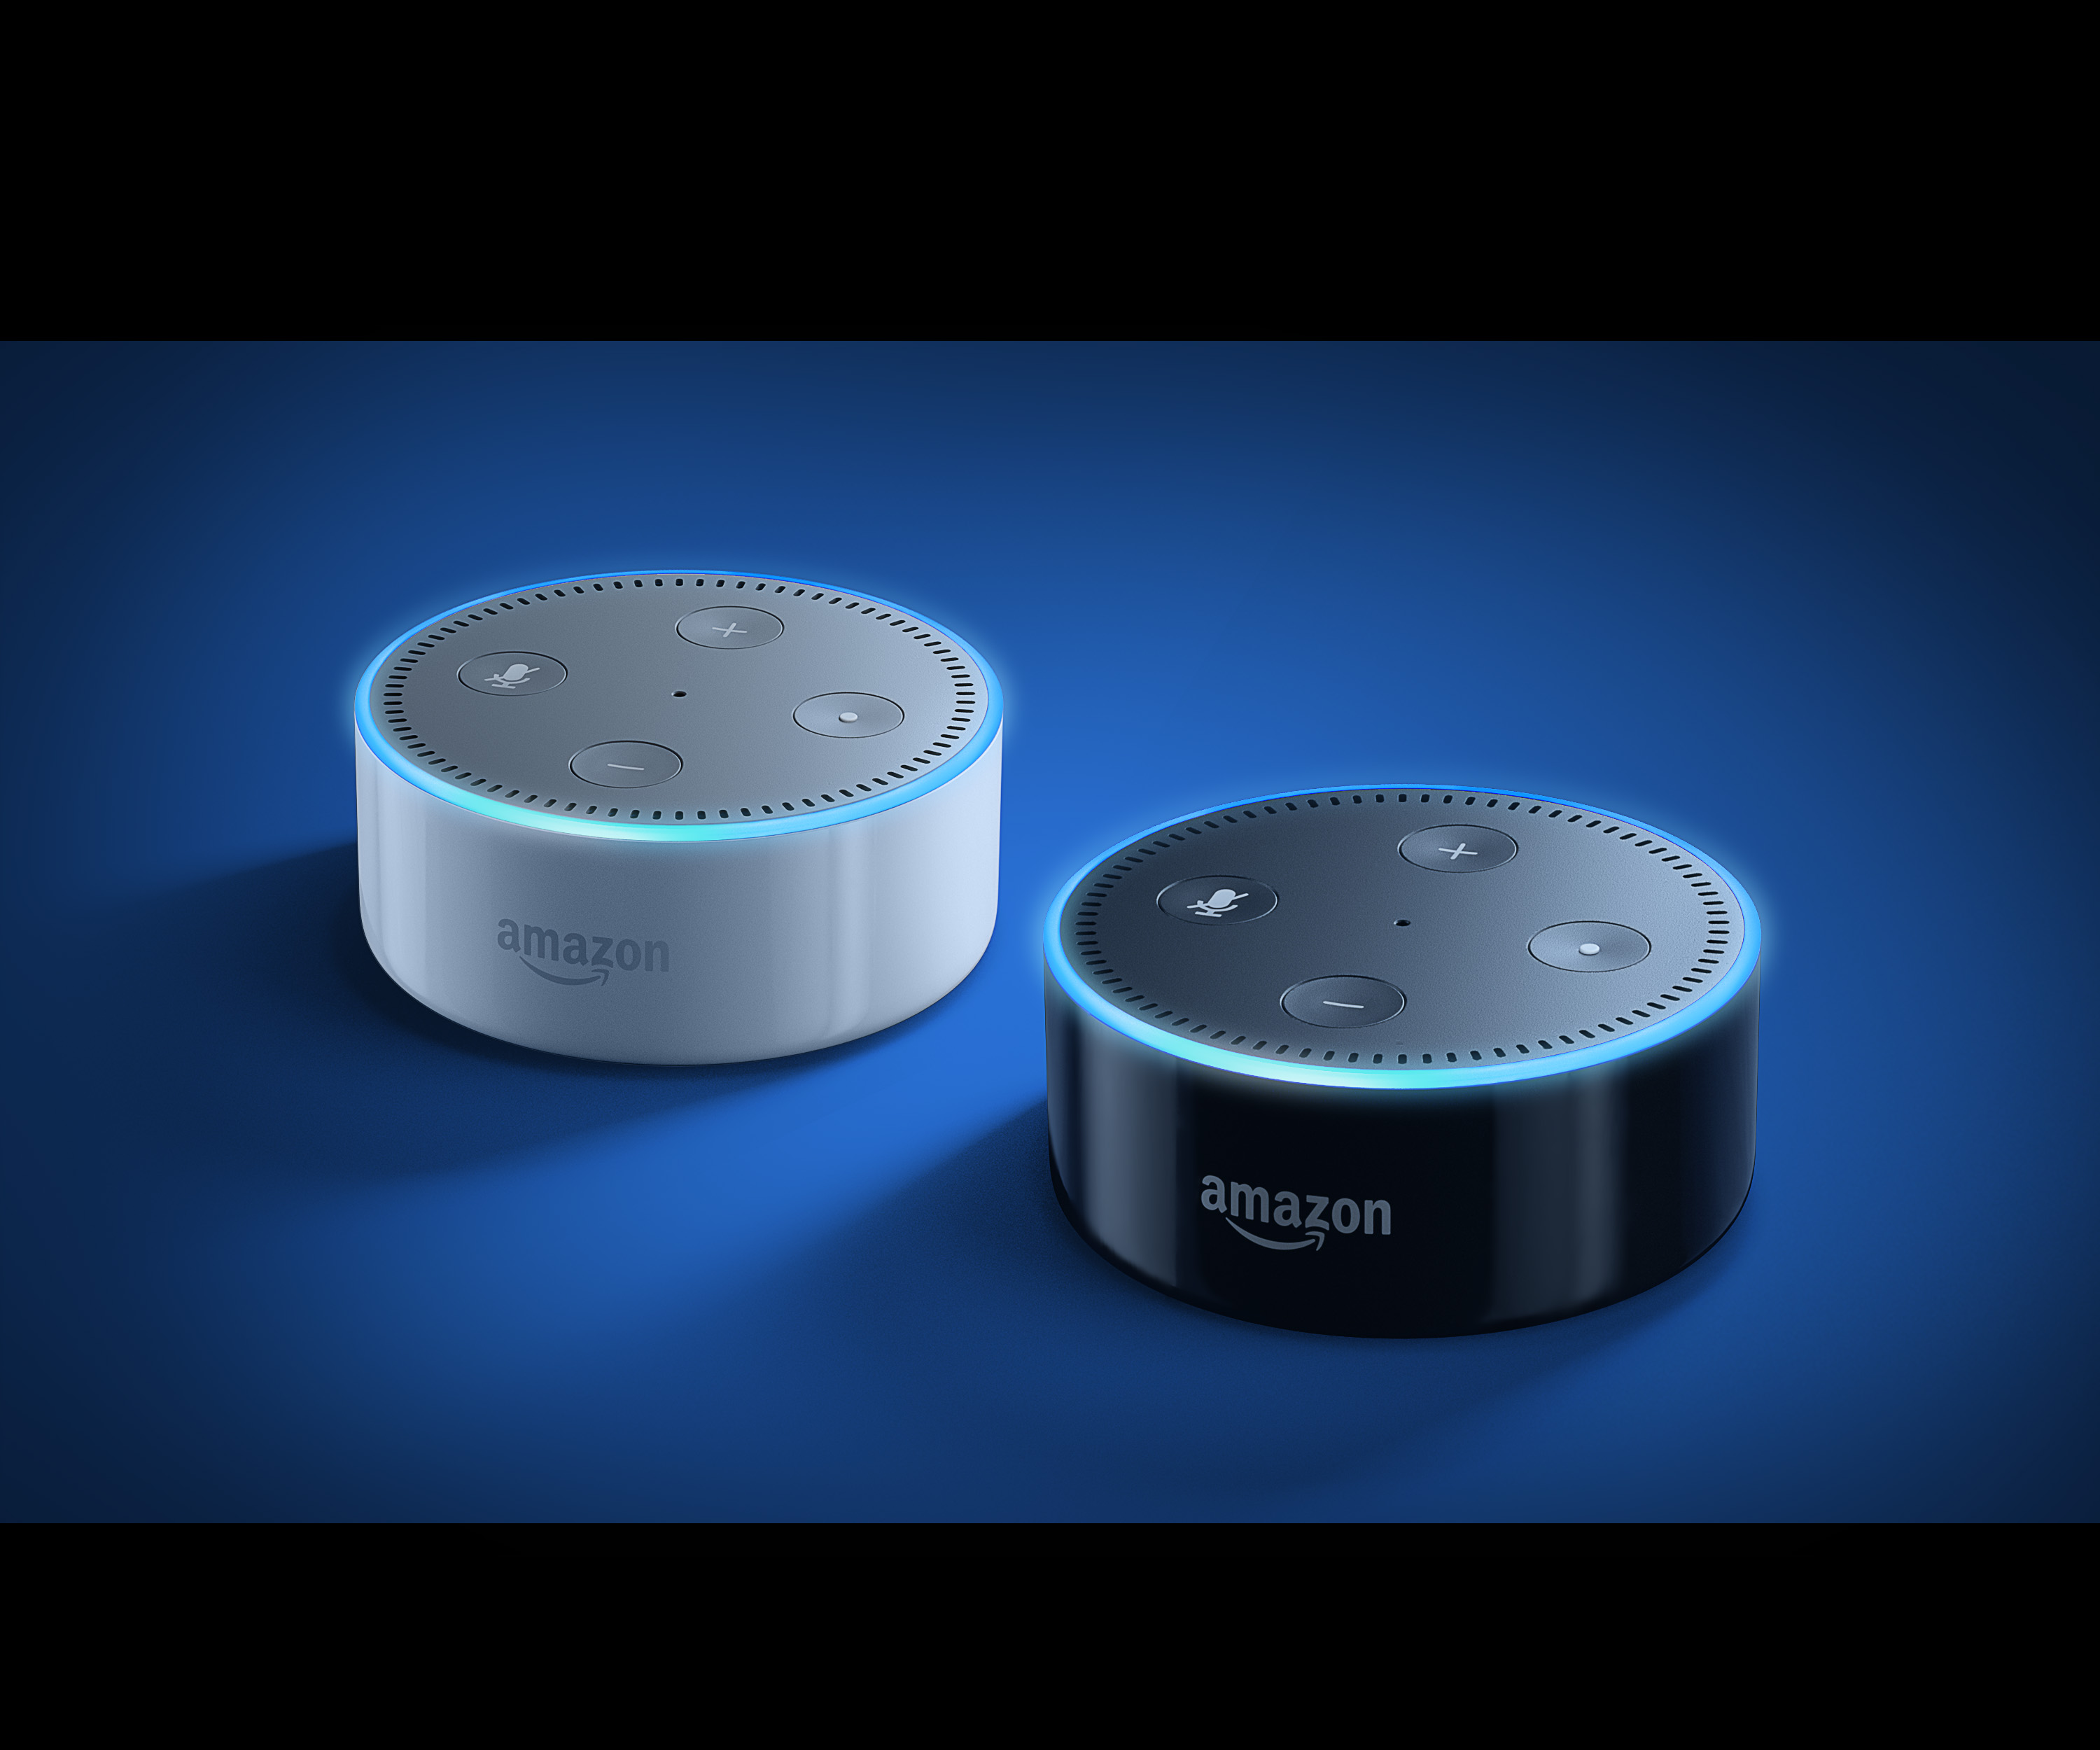 New Amazon Echo is now just £69.99 with this amazing deal